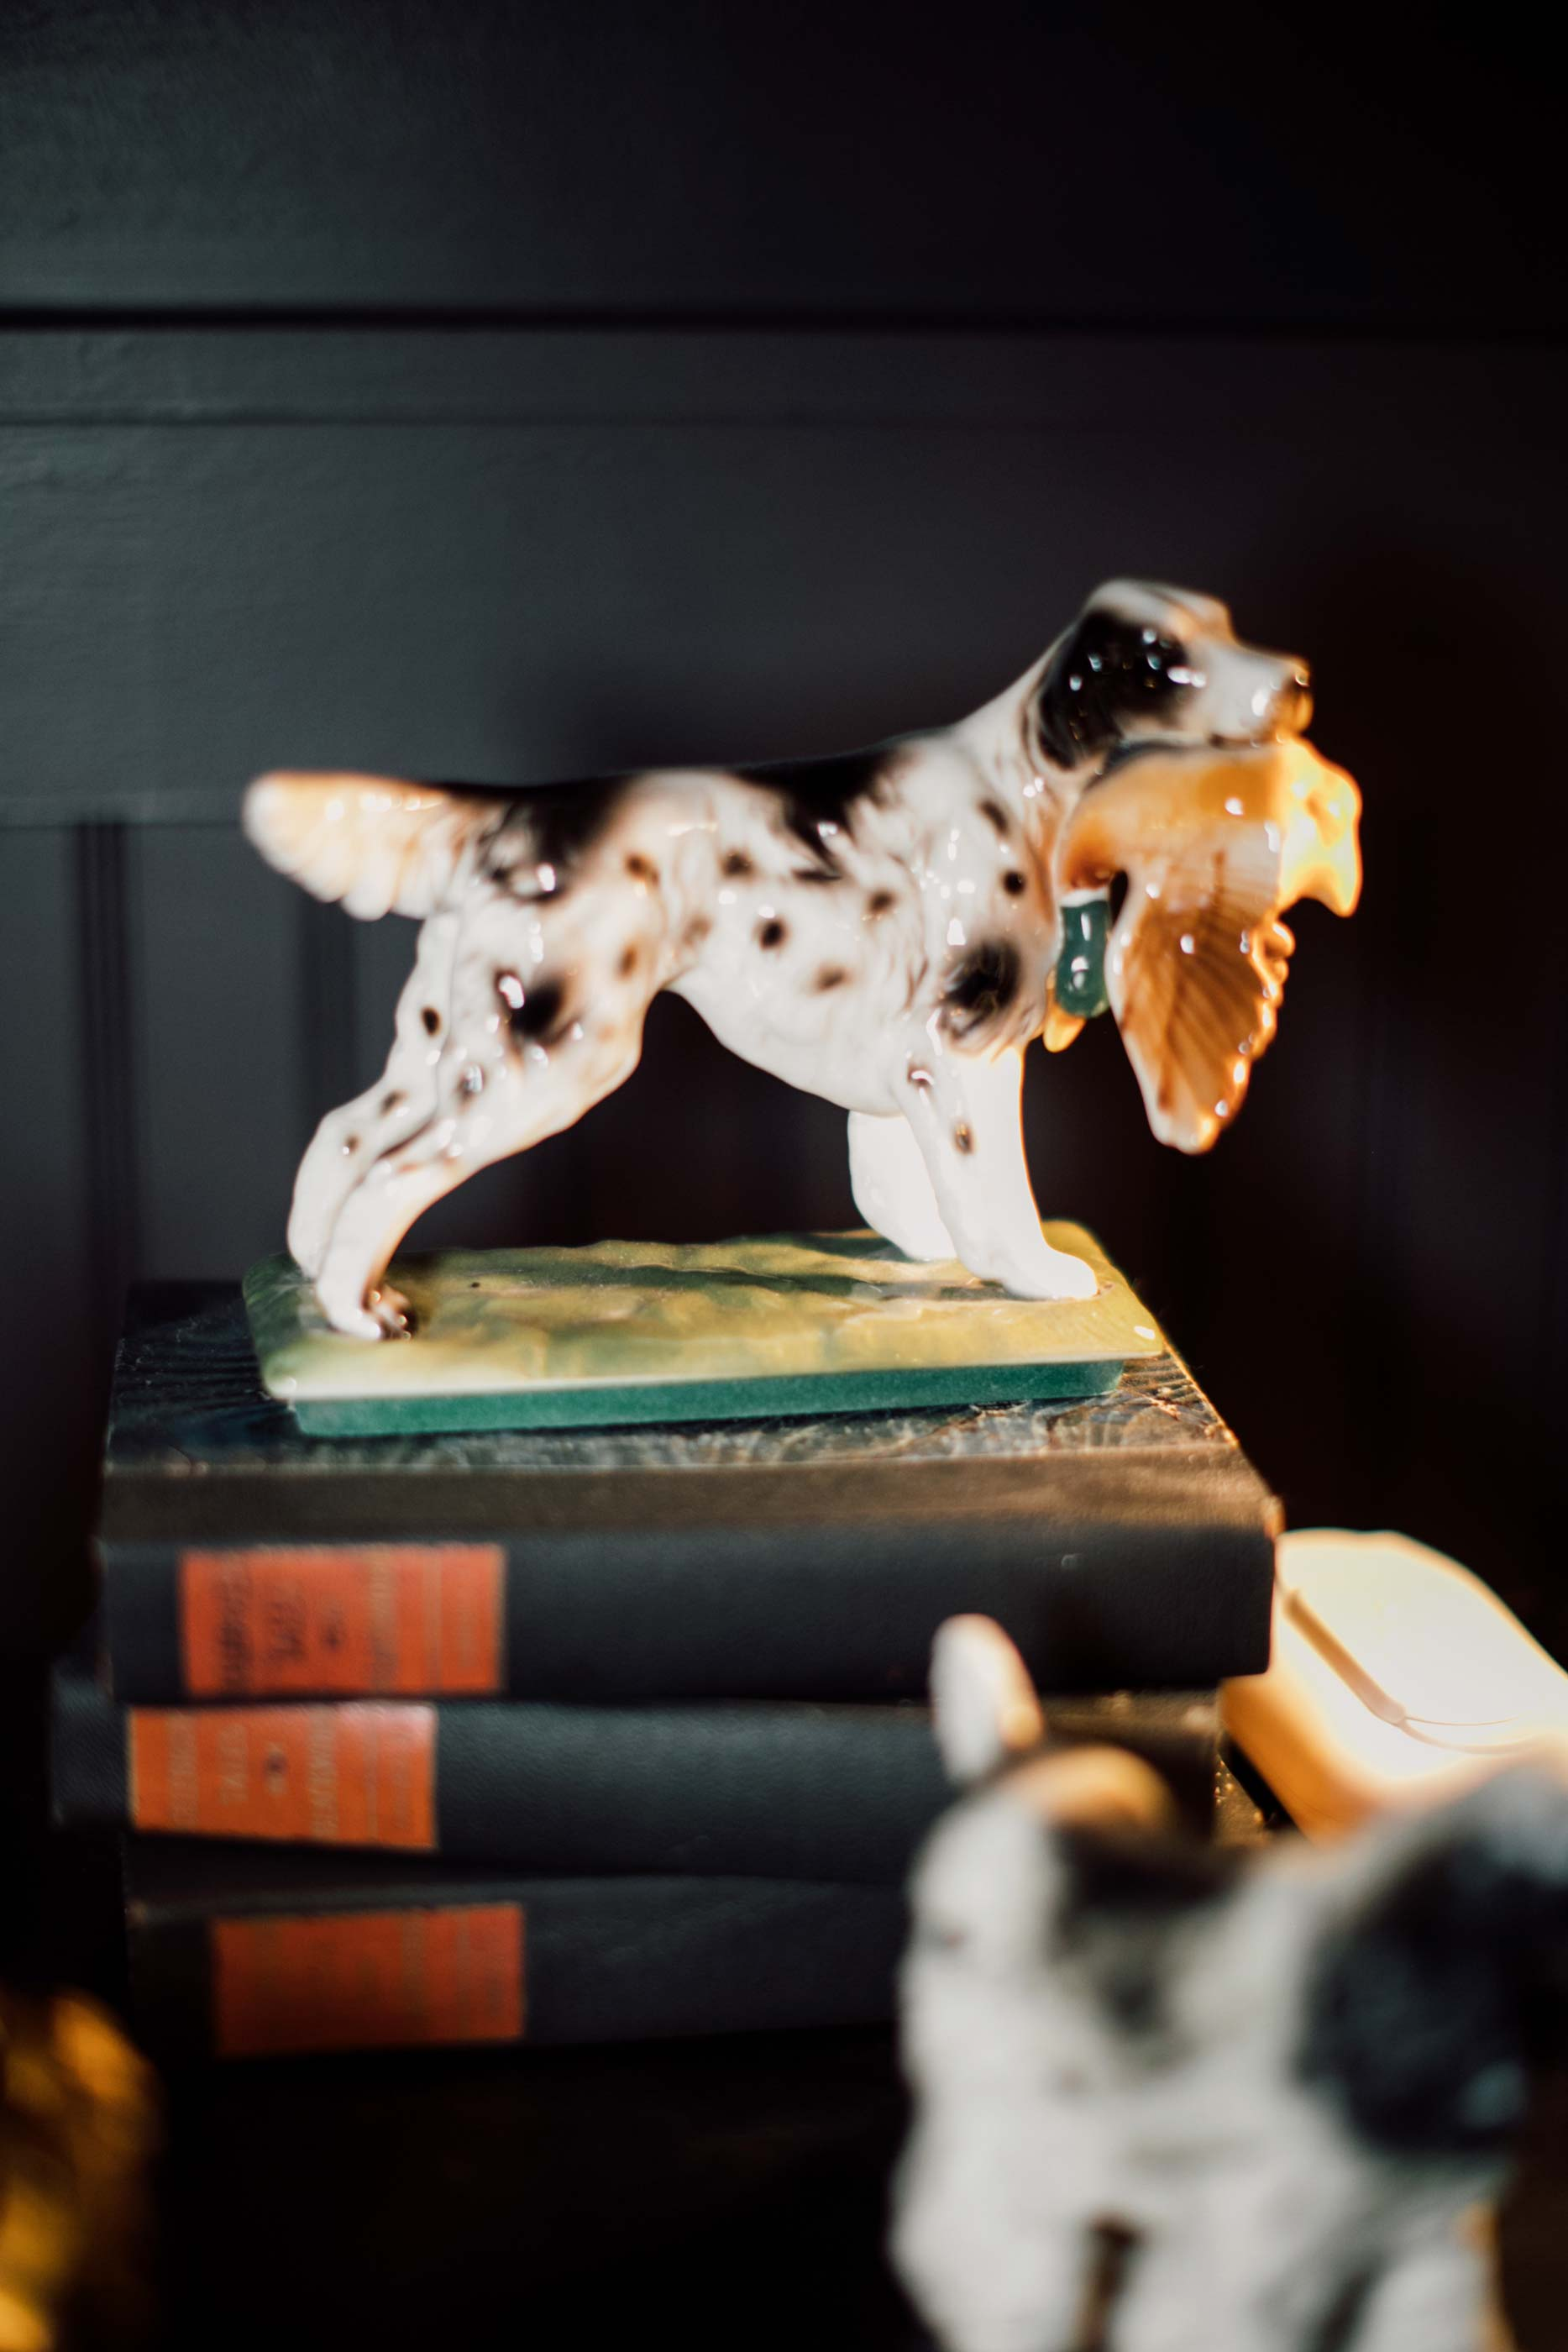 """One of the many vintage dog figurines found by Stokes. While collecting dogs for the project she became ver y particular. Not just any old dog would do. """"I became a dog statue connoisseur,"""" she laughs."""